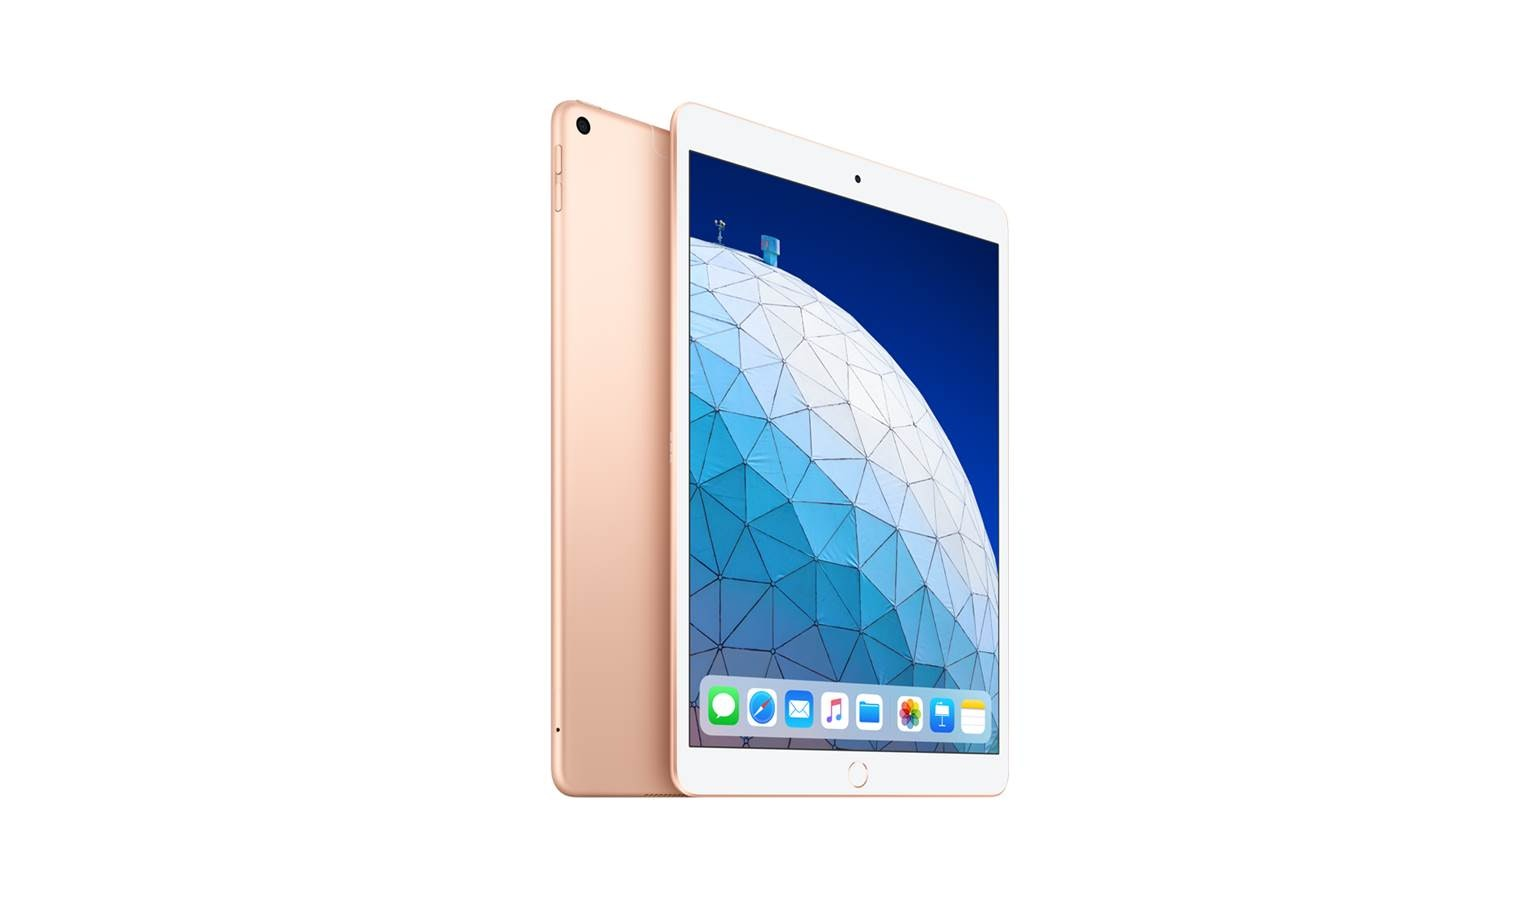 Apple iPad Air 4G (64GB) - Gold (Front)